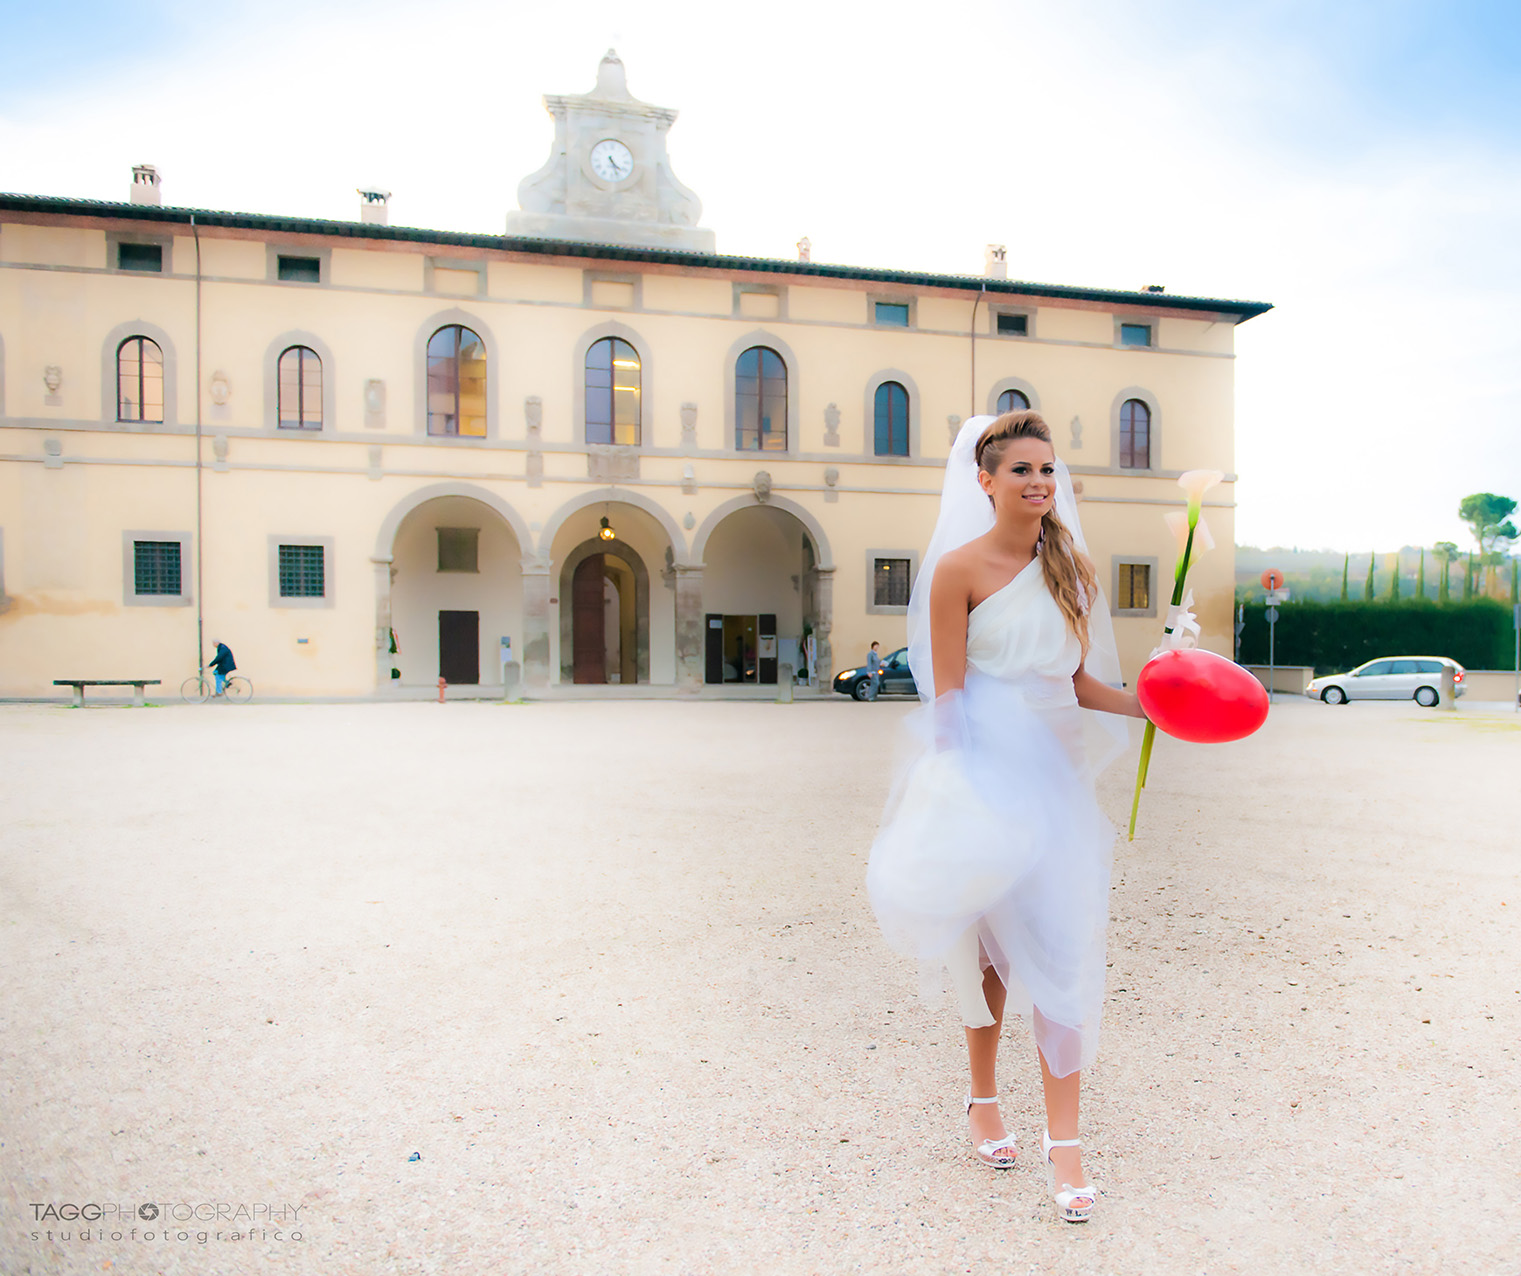 matrimonio-terra-del-sole-tagg-photography